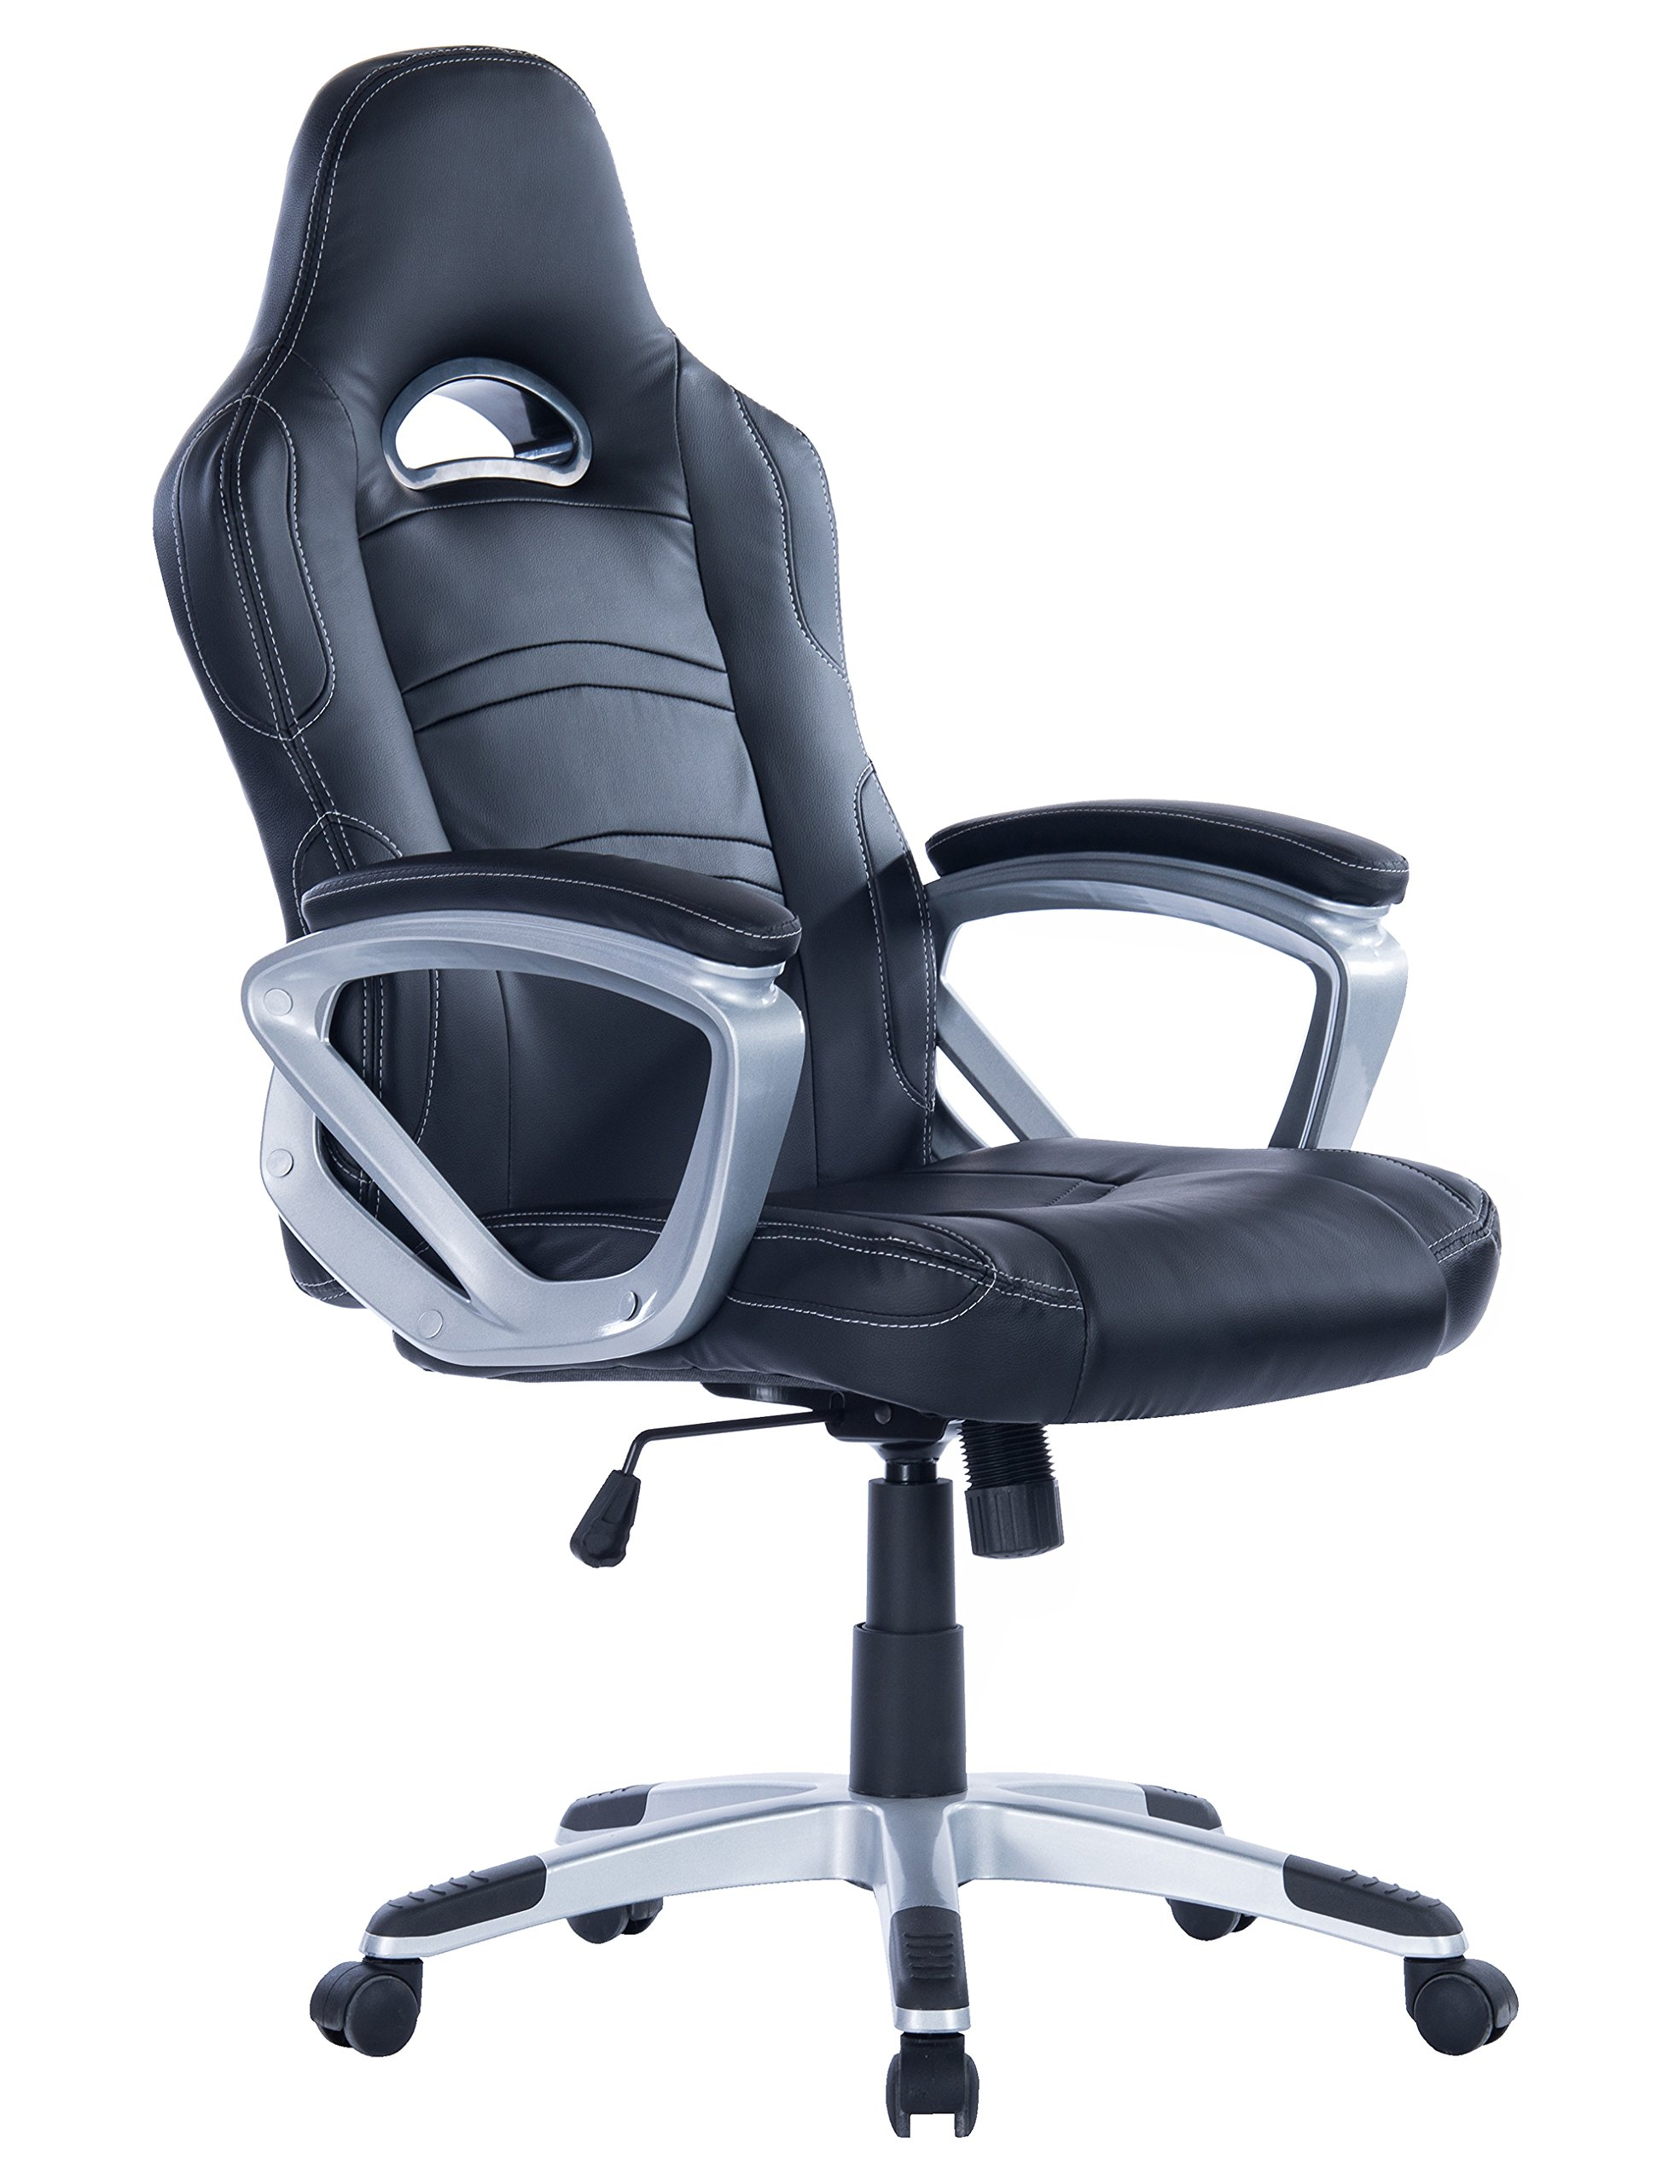 Killbee Large Ergonomic Gaming Chair  High Back Swivel  Executive Office Chair Height Adjustable PU Leather Bucket Seat Task Chair Over 400lbs Capacity (Black)